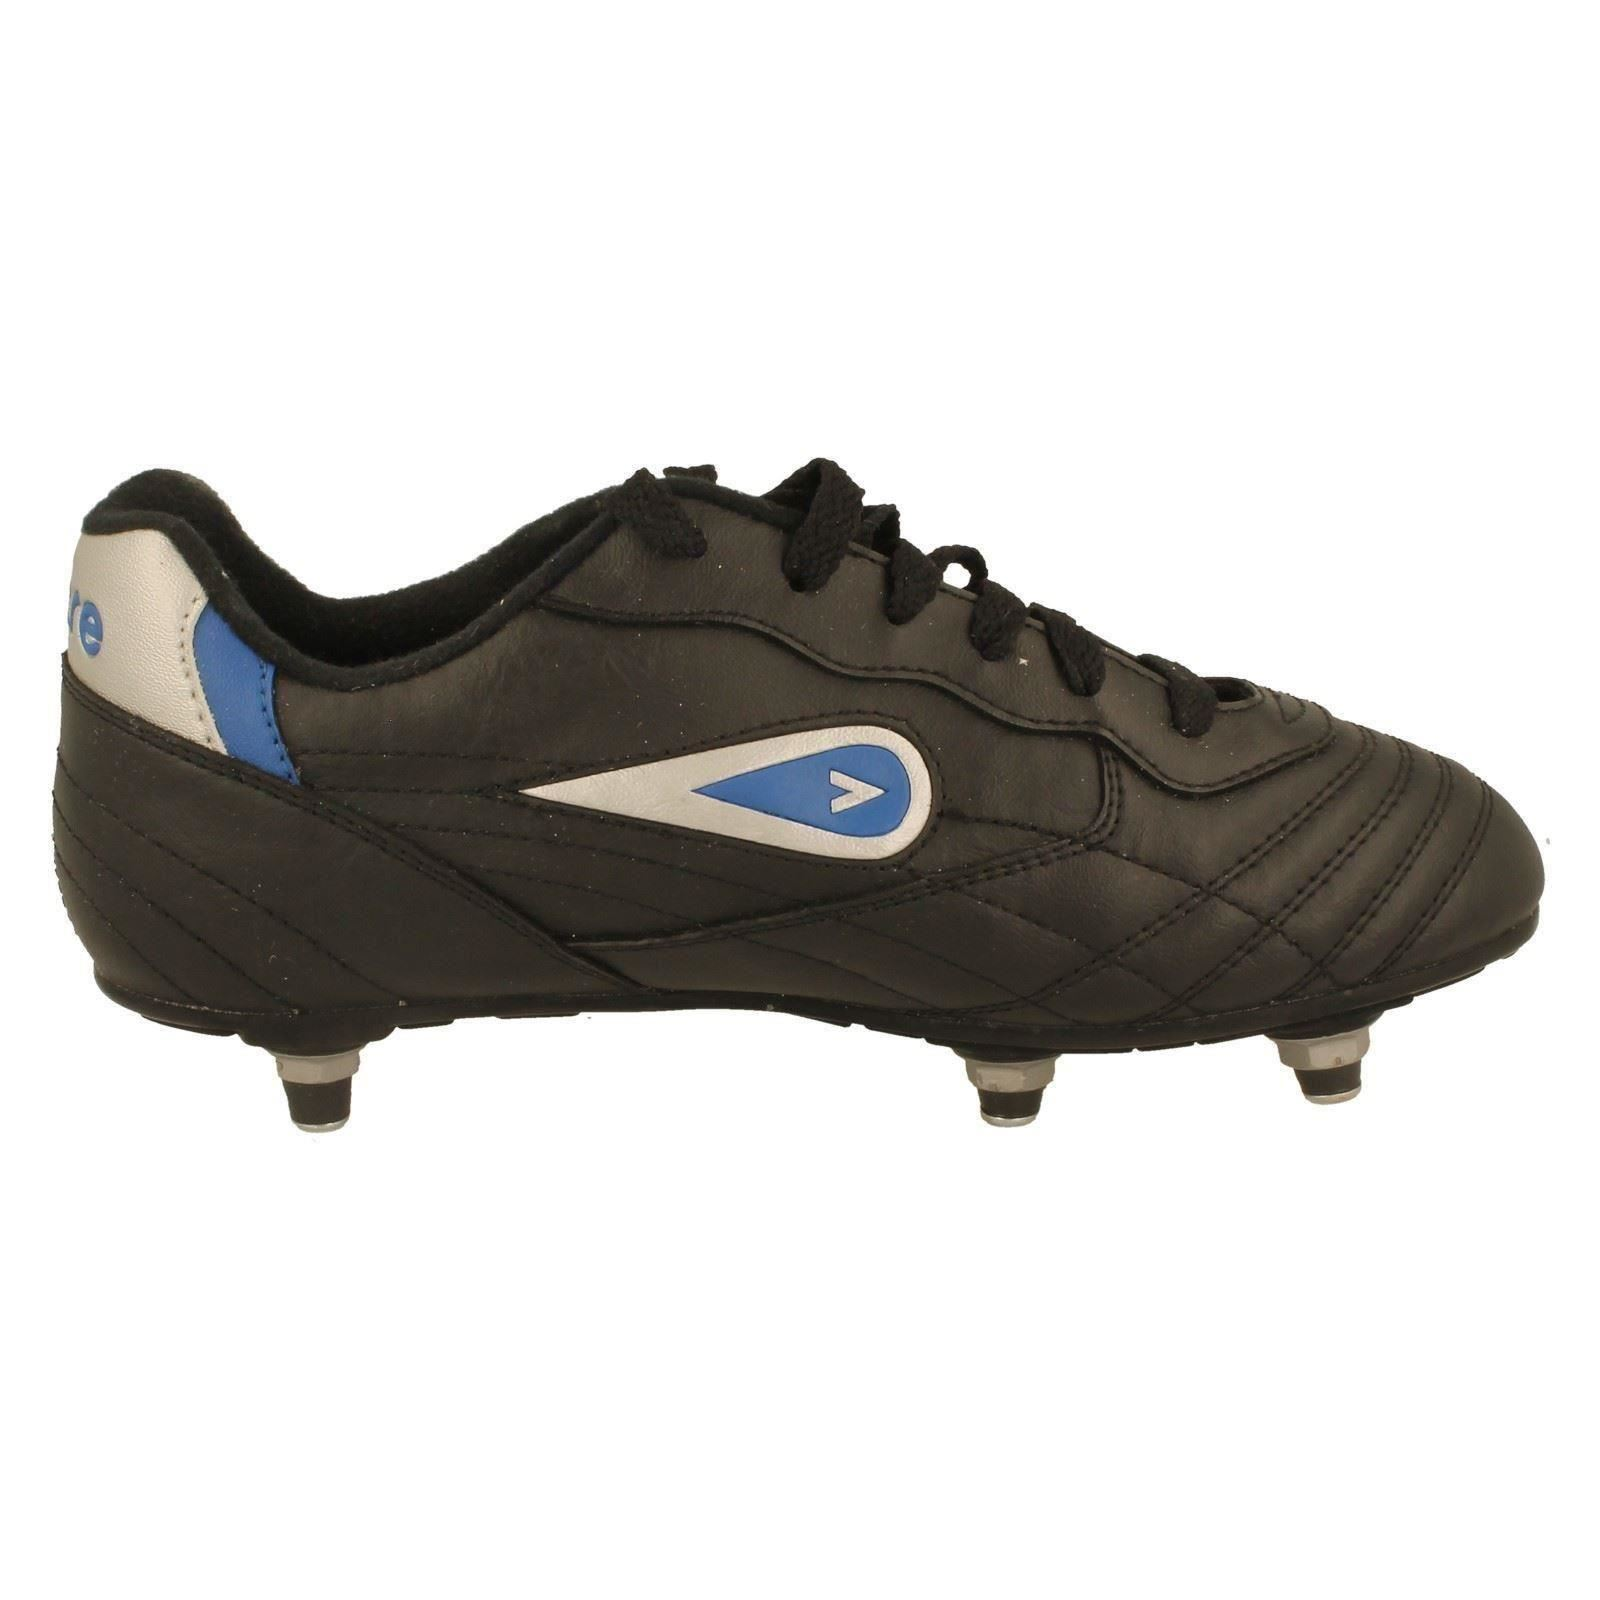 Mitre Boys Football Boots; The Style Galaxy -w